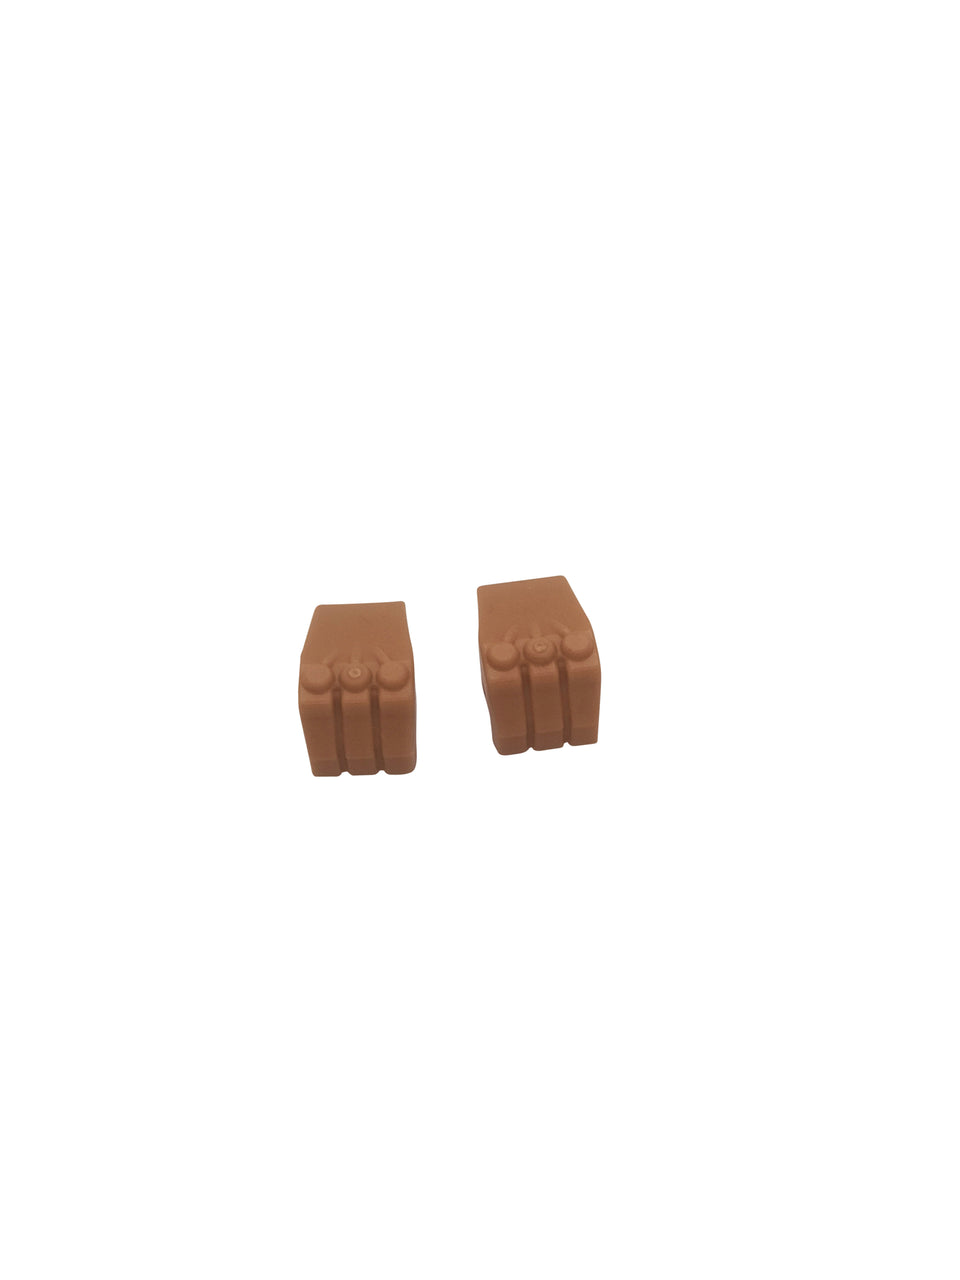 Special gloves for a Lego character - brown color